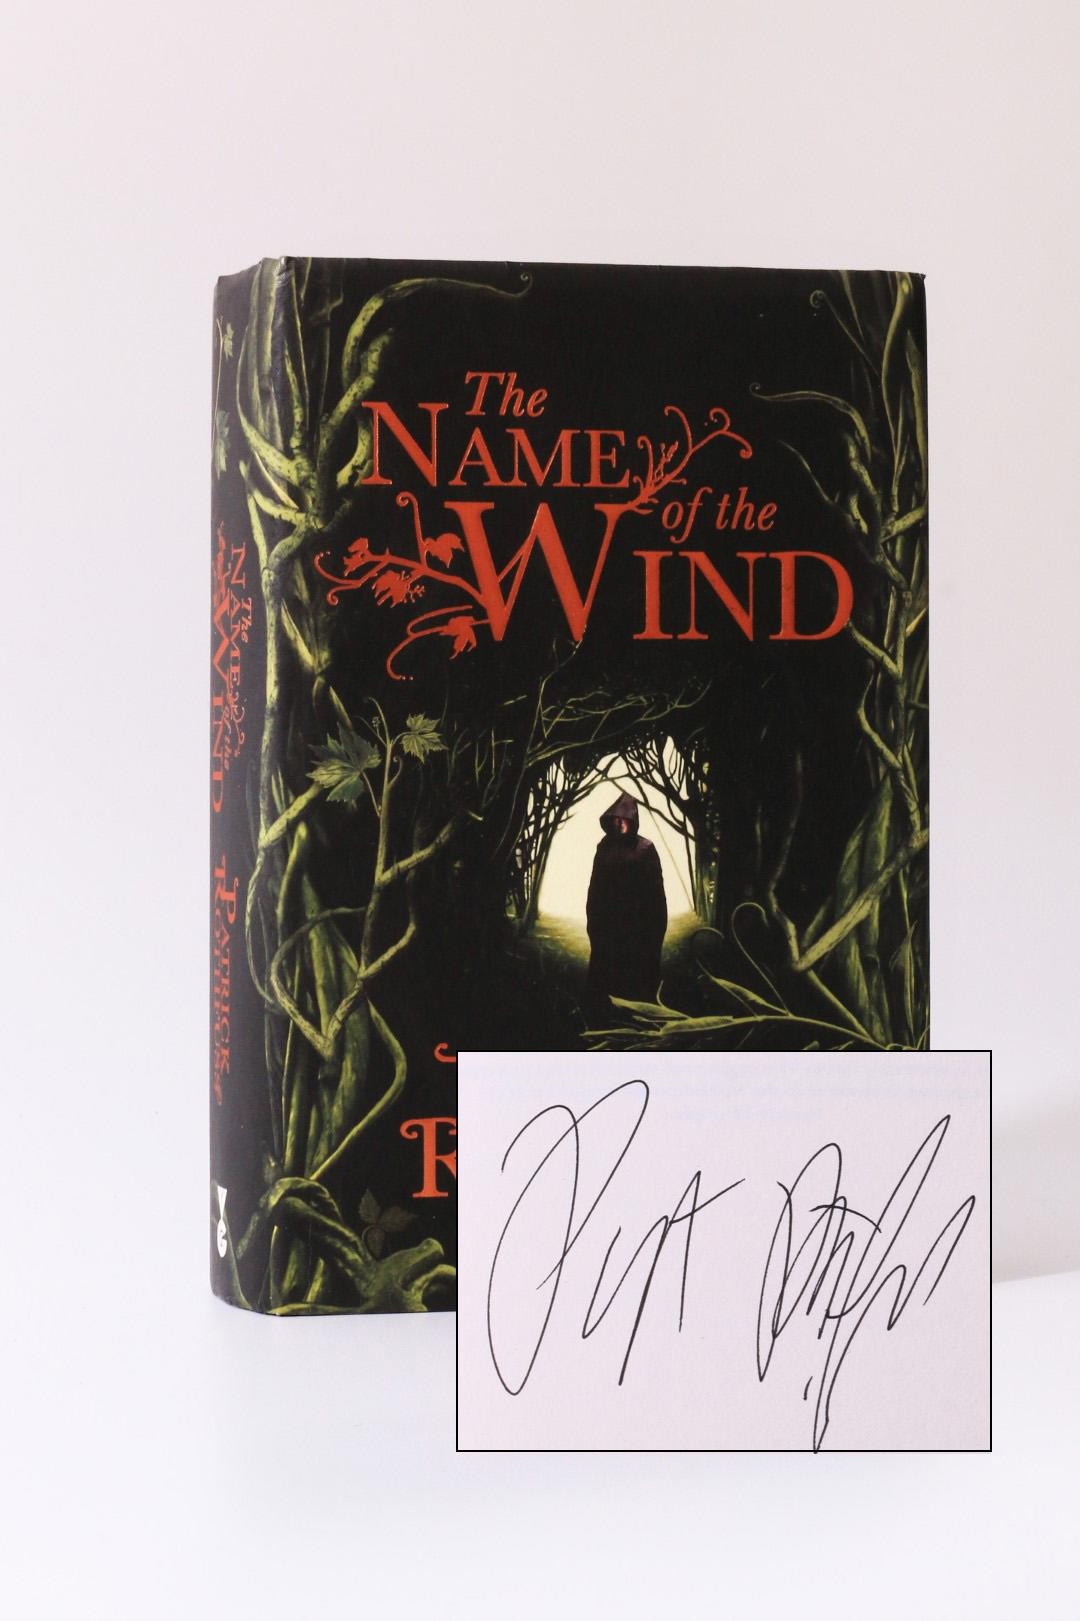 Patrick Rothfuss - The Name of the Wind - Gollancz, 2007, Signed First Edition.